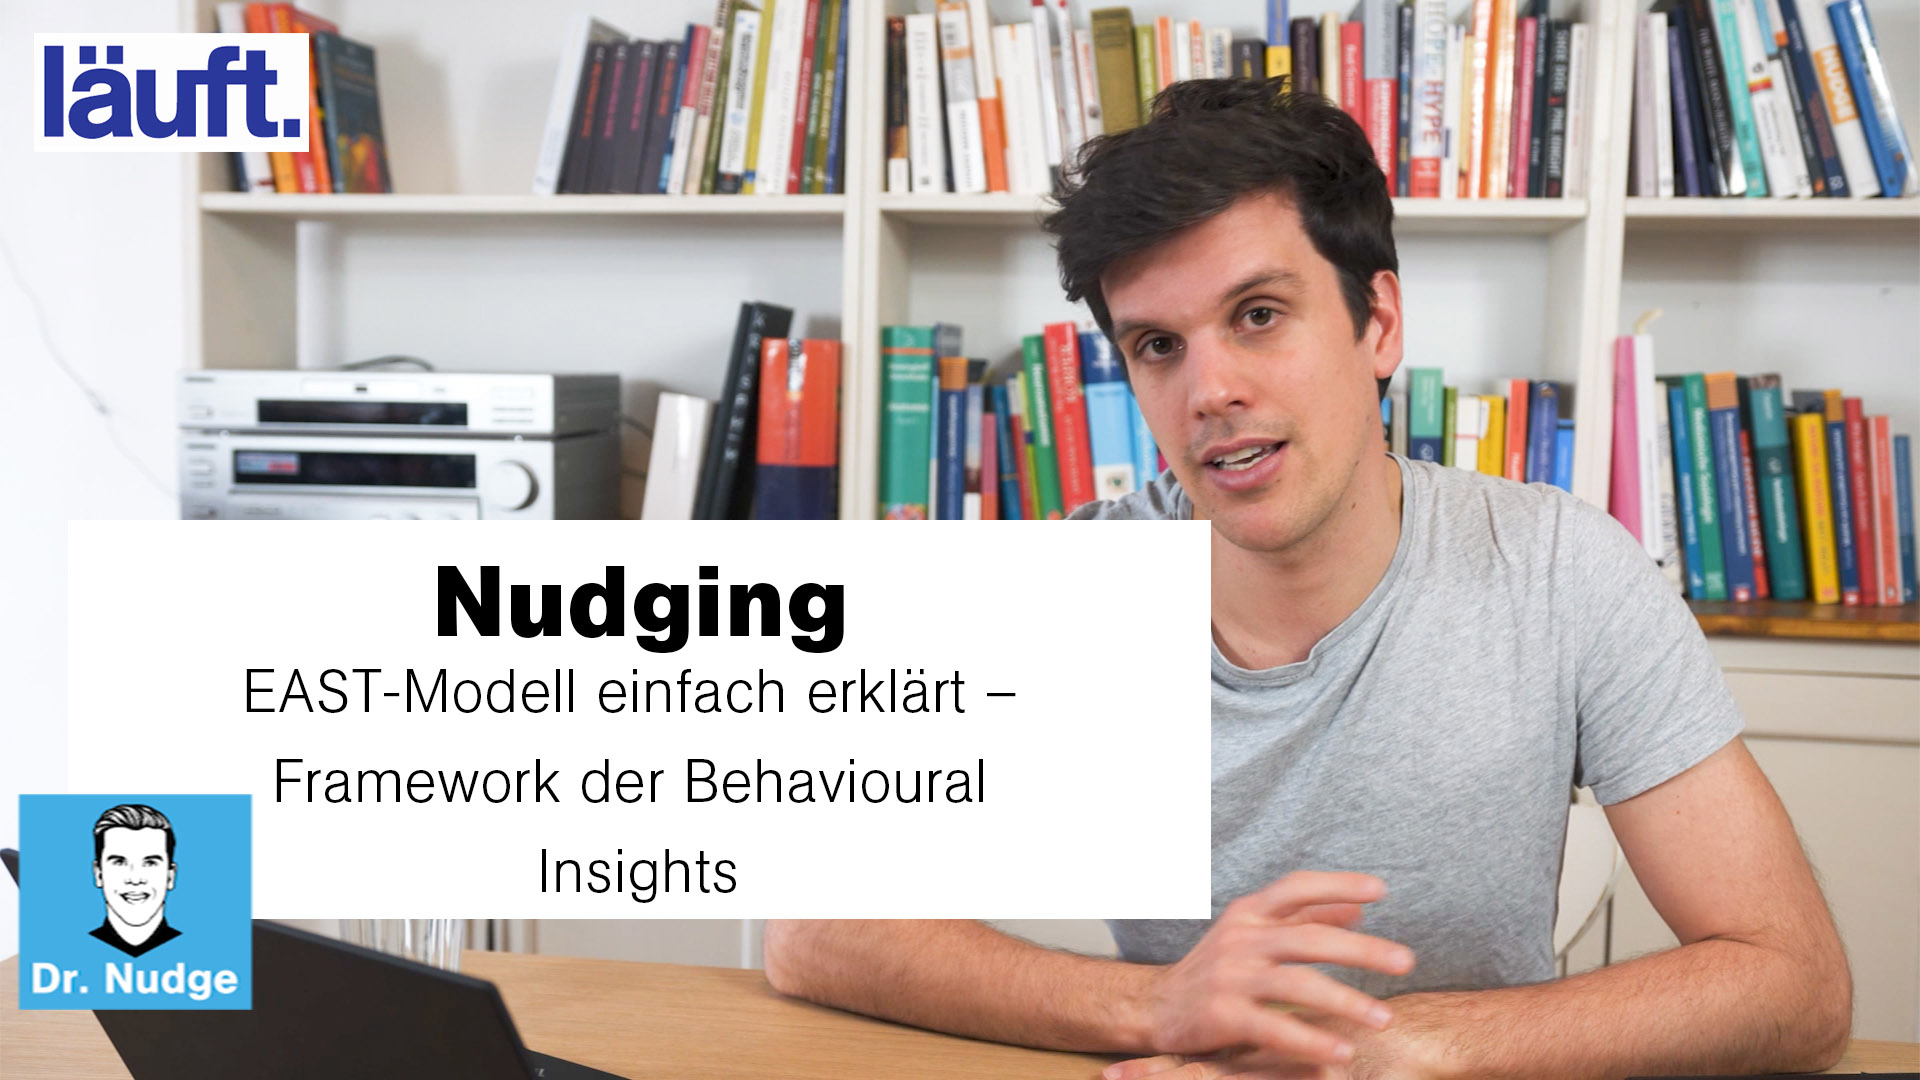 Nudging – EAST-Modell einfach erklärt – Framework der Behavioural Insights | Dr. Nudge #7